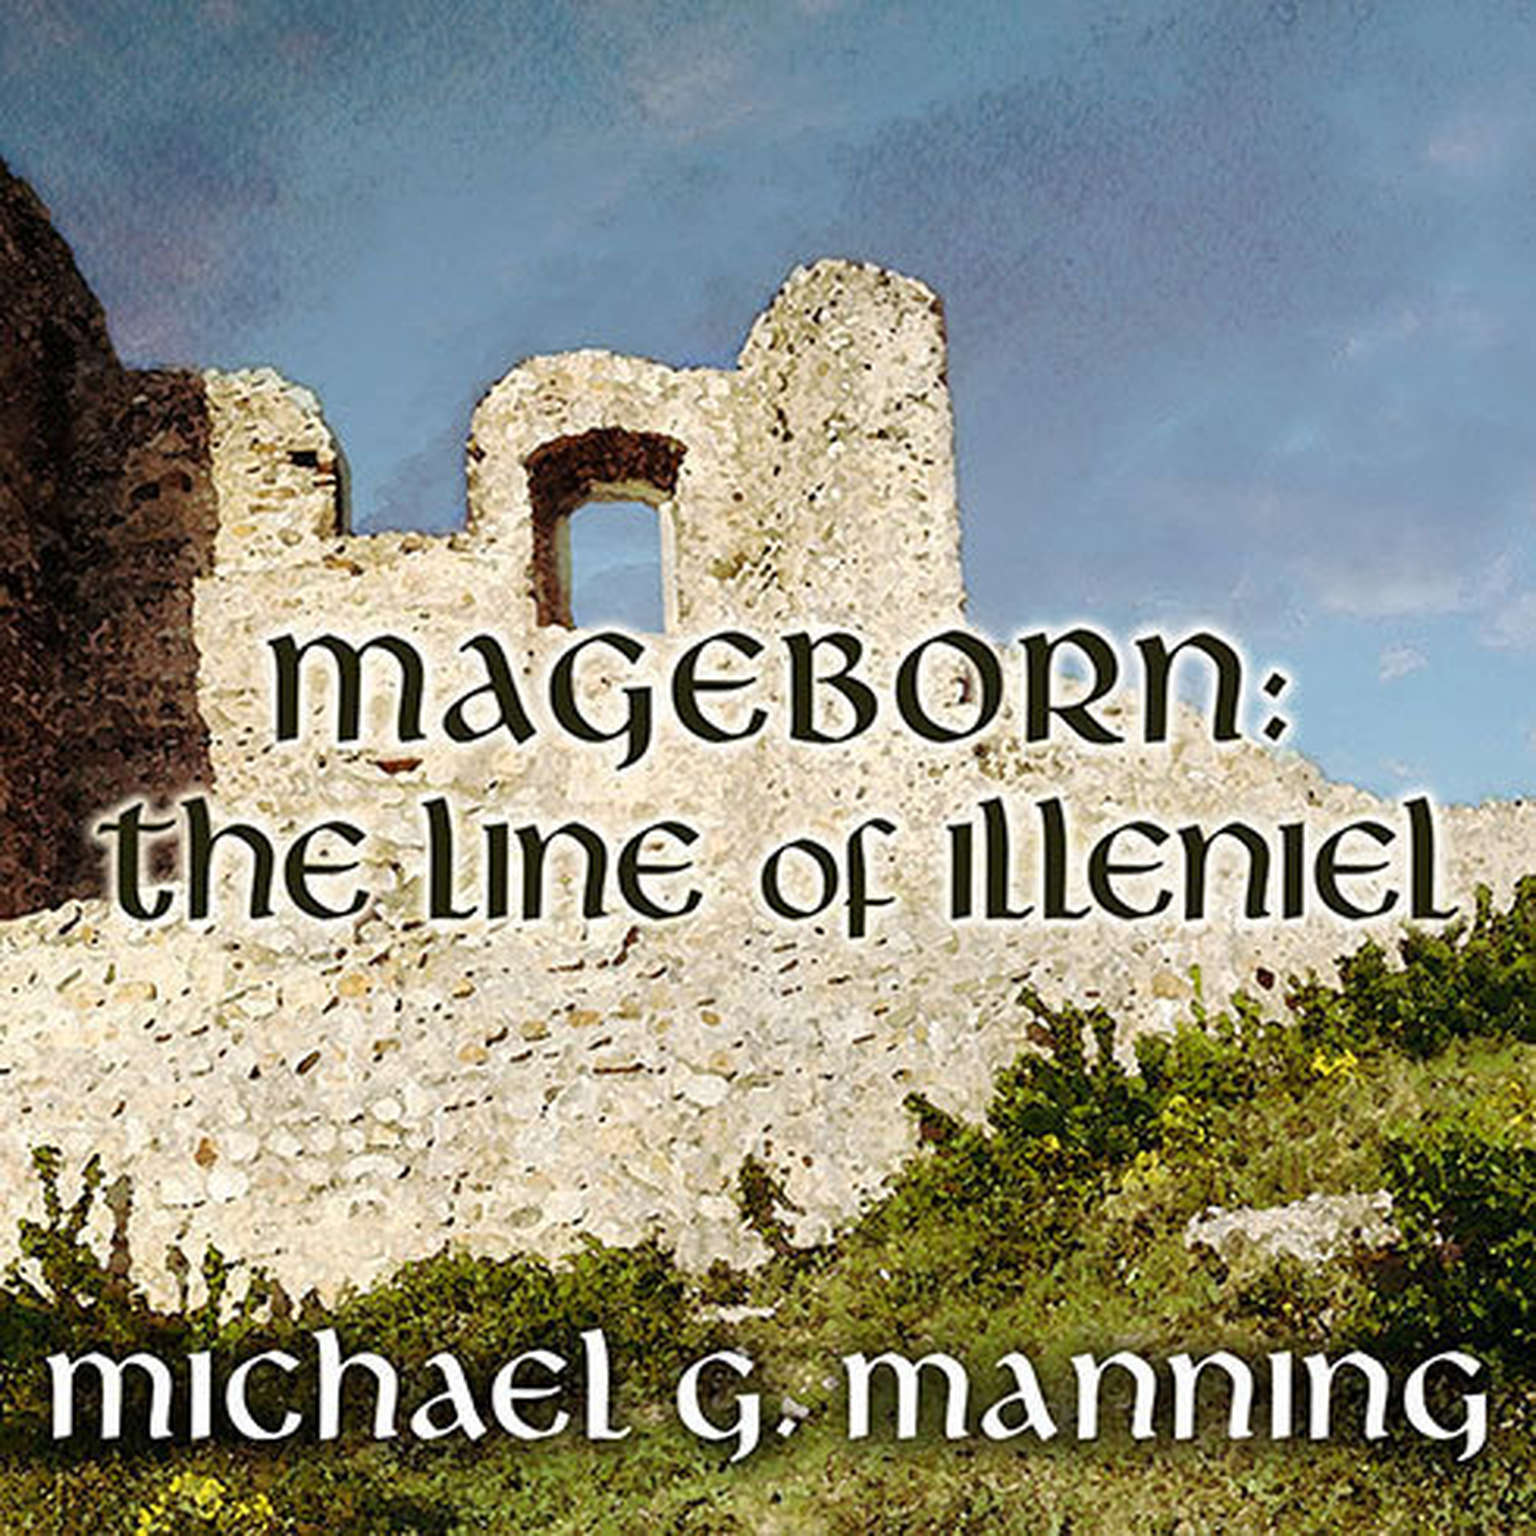 Printable Mageborn: The Line of Illeniel Audiobook Cover Art